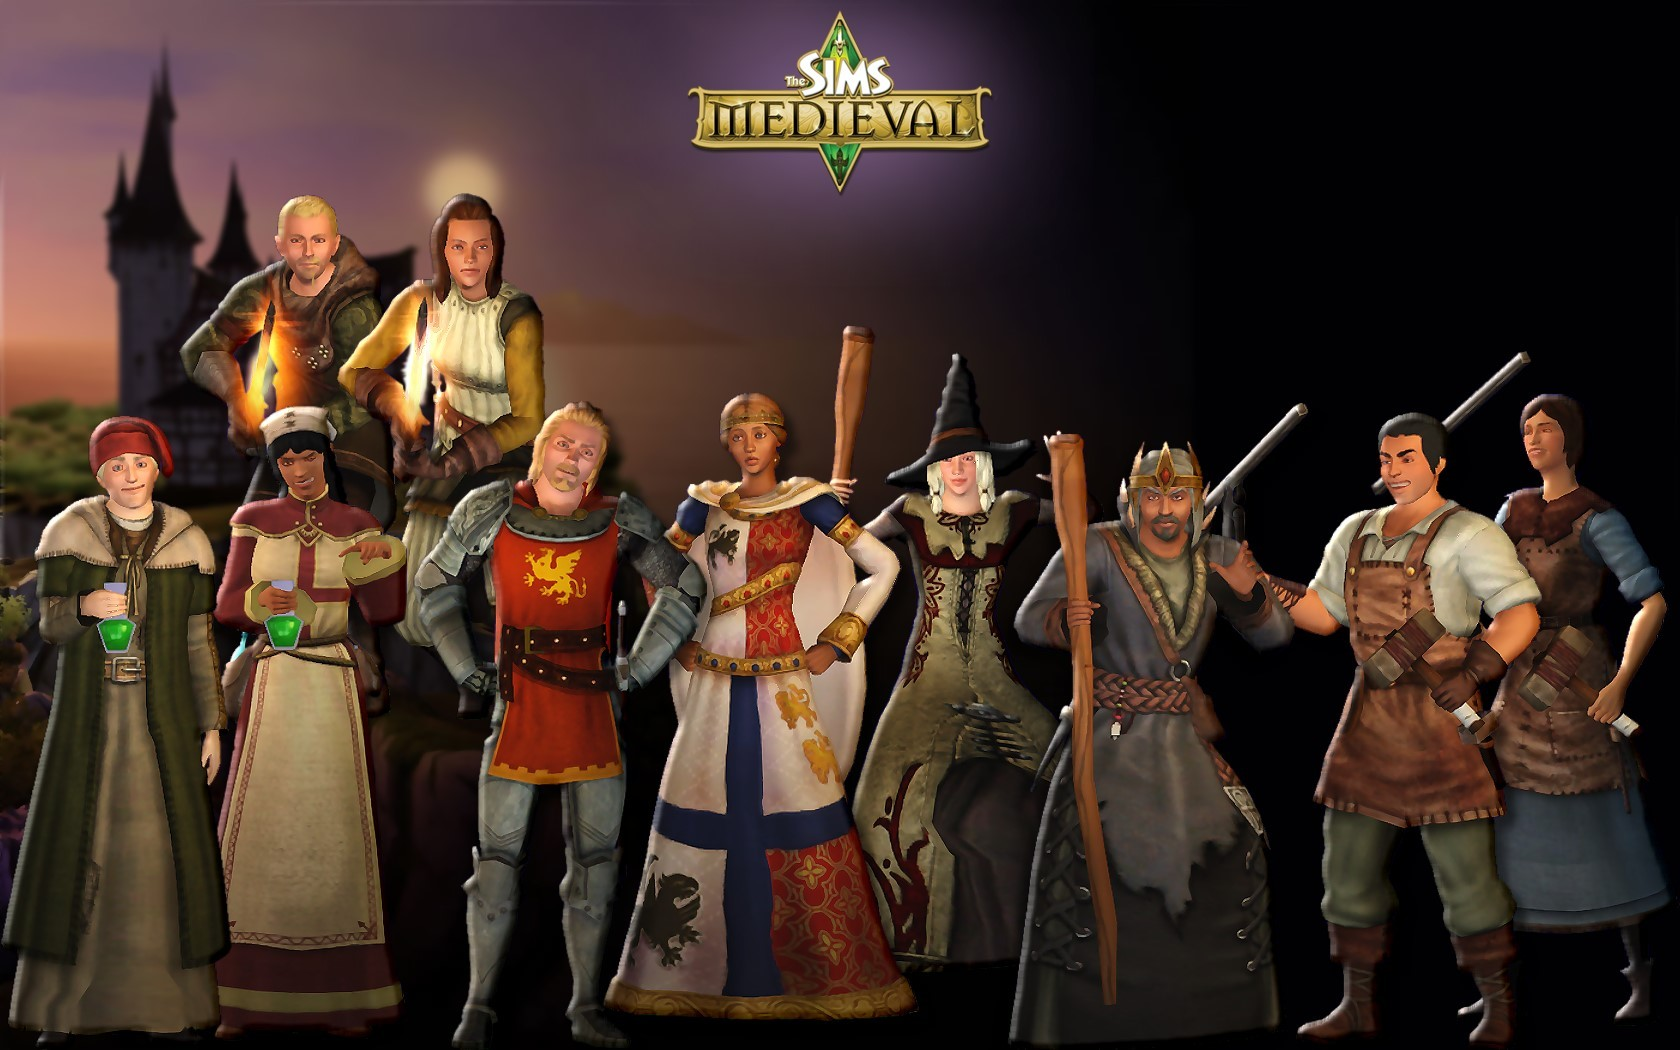 The Sims Medieval Wallpaper